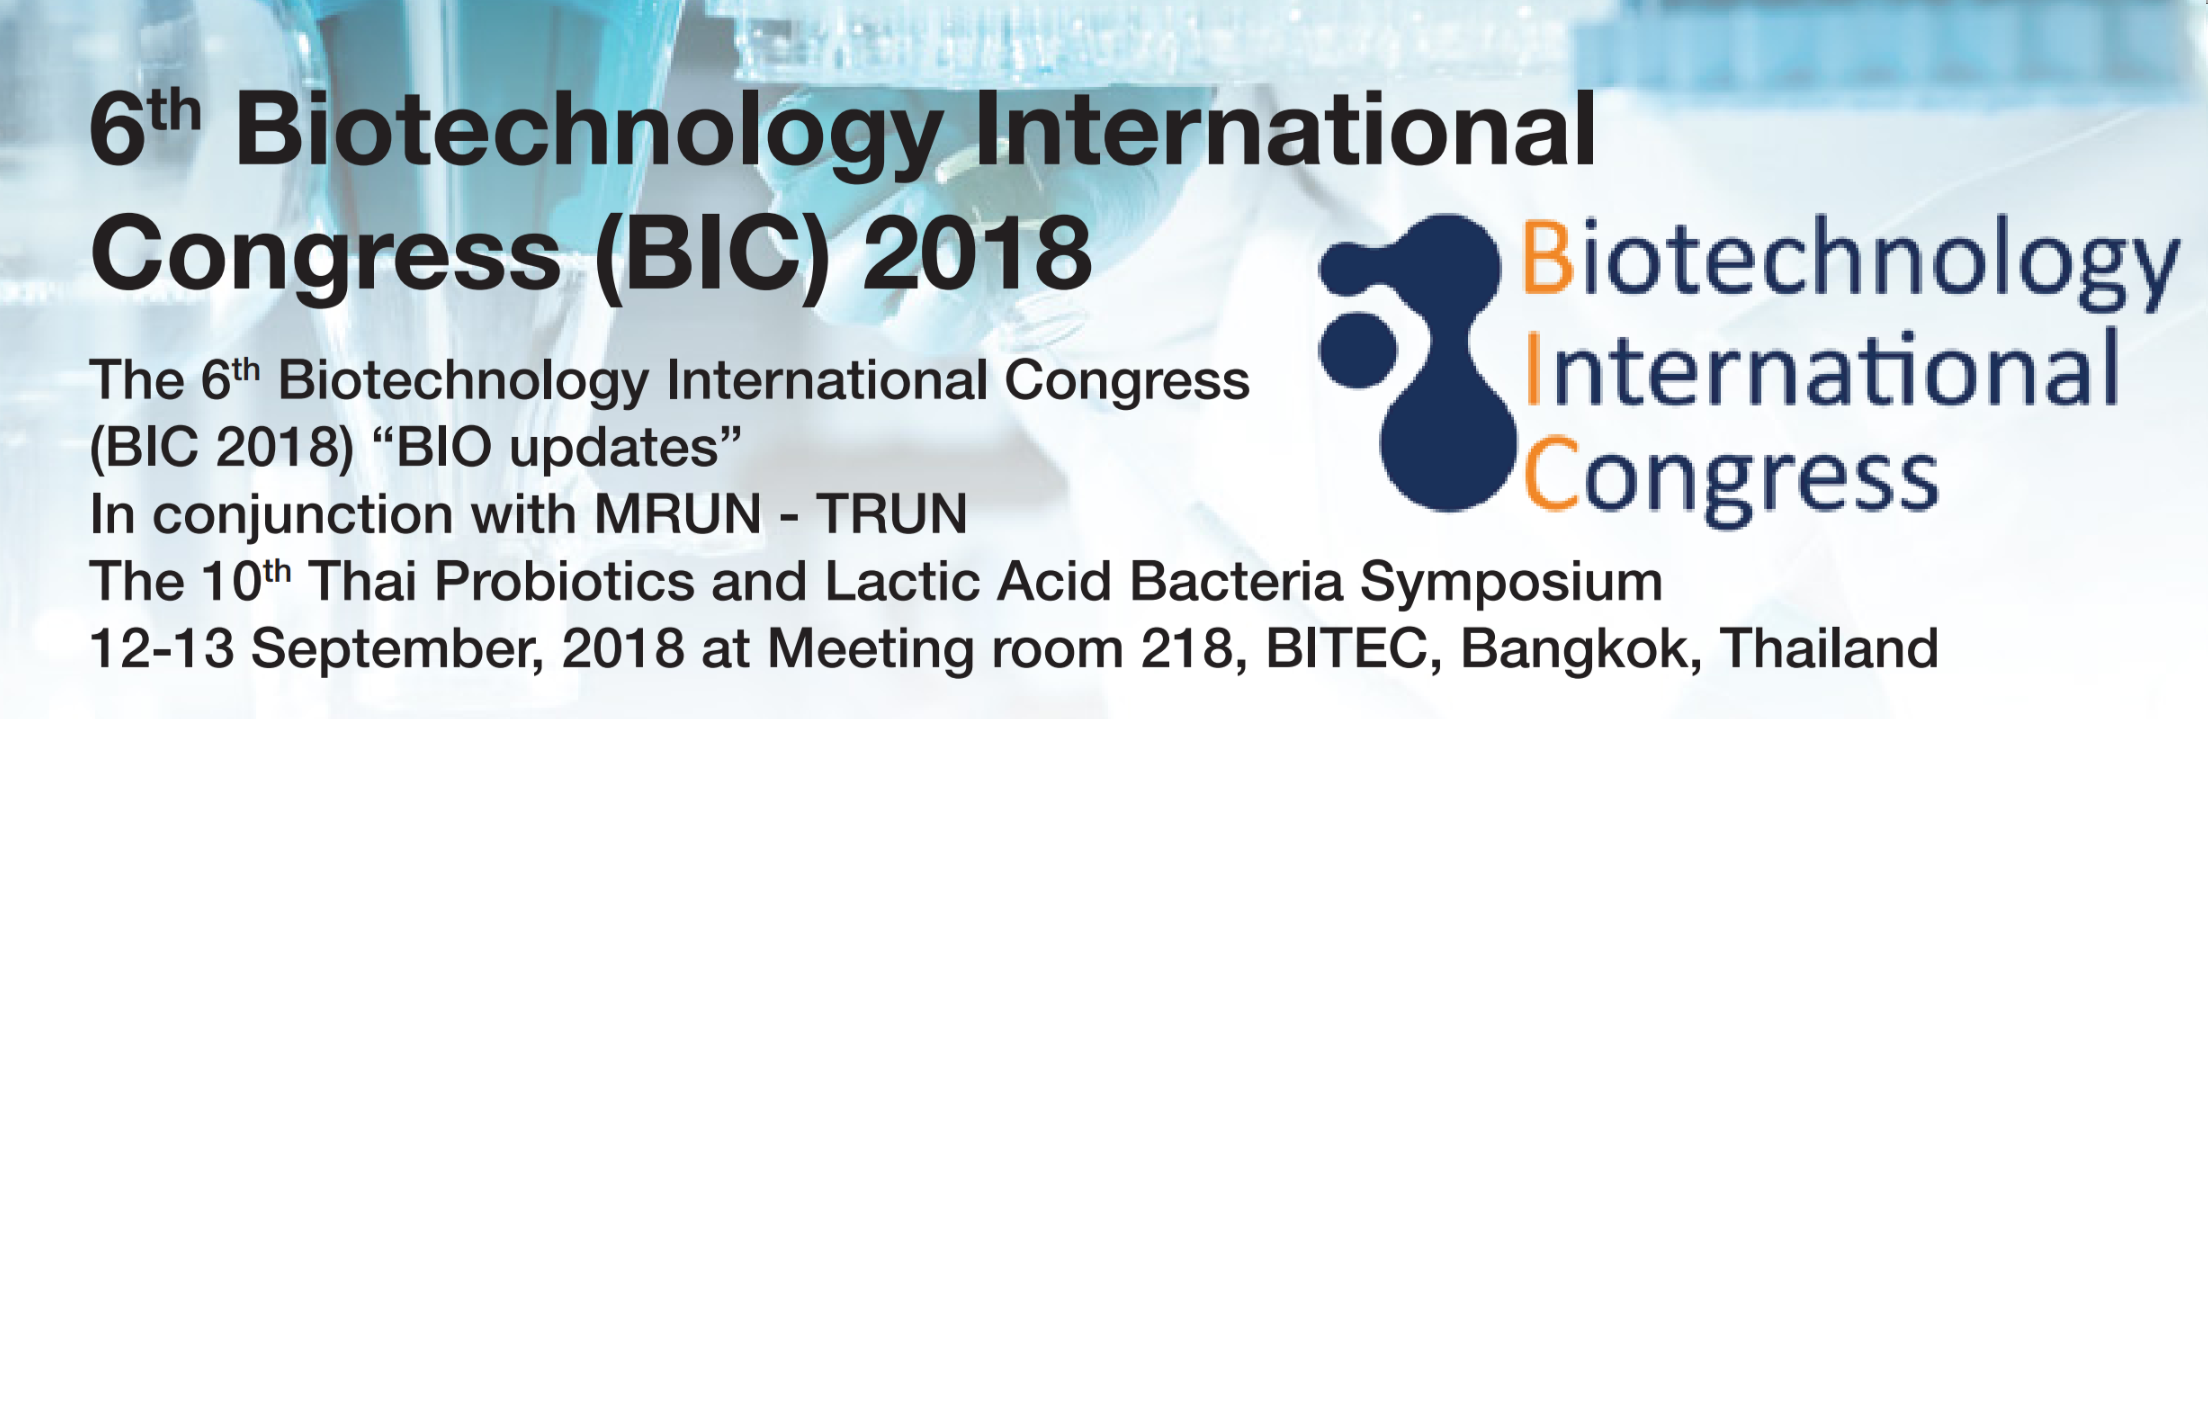 6th Biotechnology International Congress (BIC) 2018